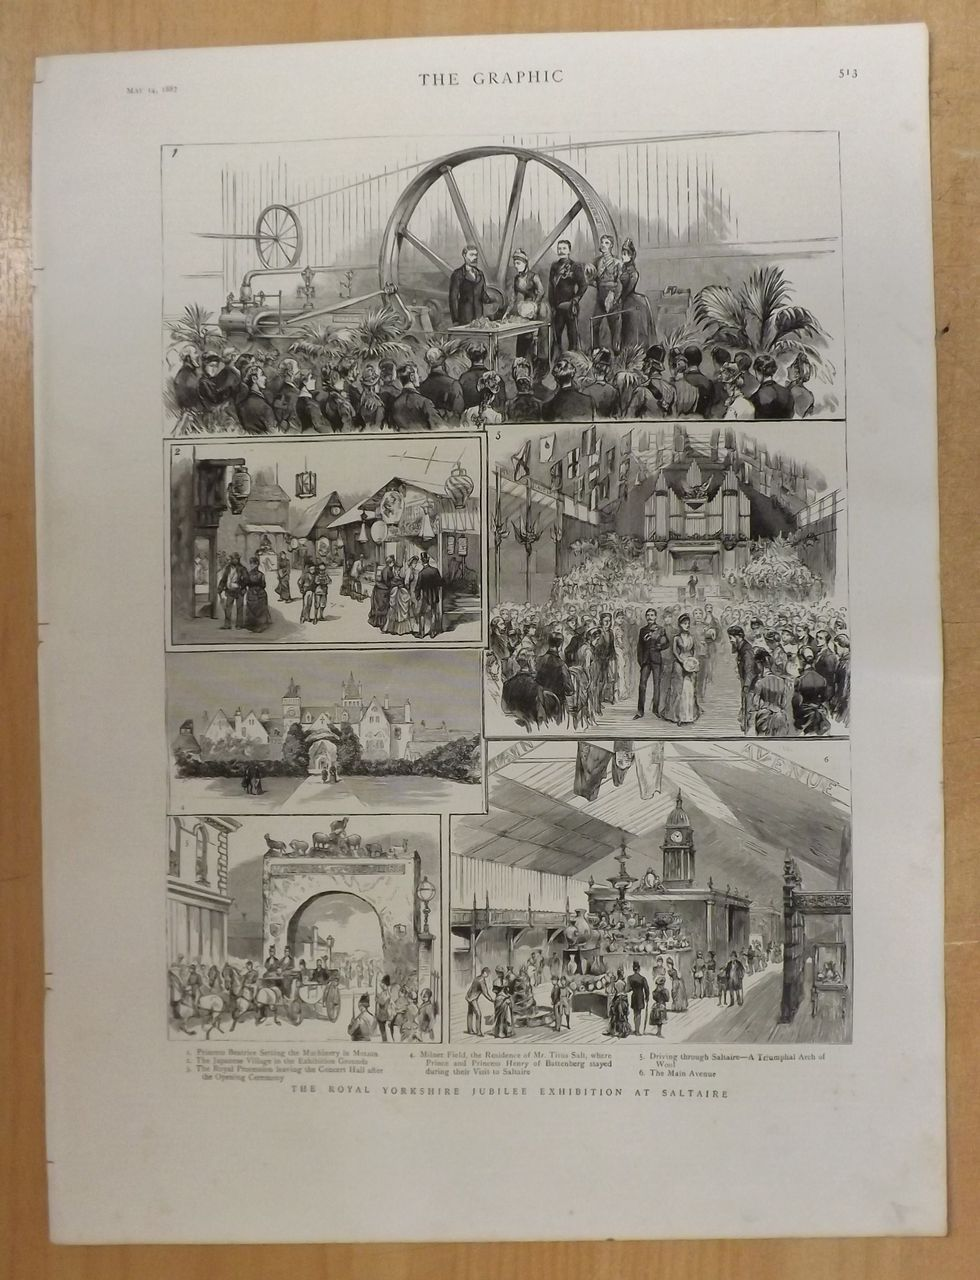 Royal Yorkshire Jubilee  Exhibition - The Graphic 1887